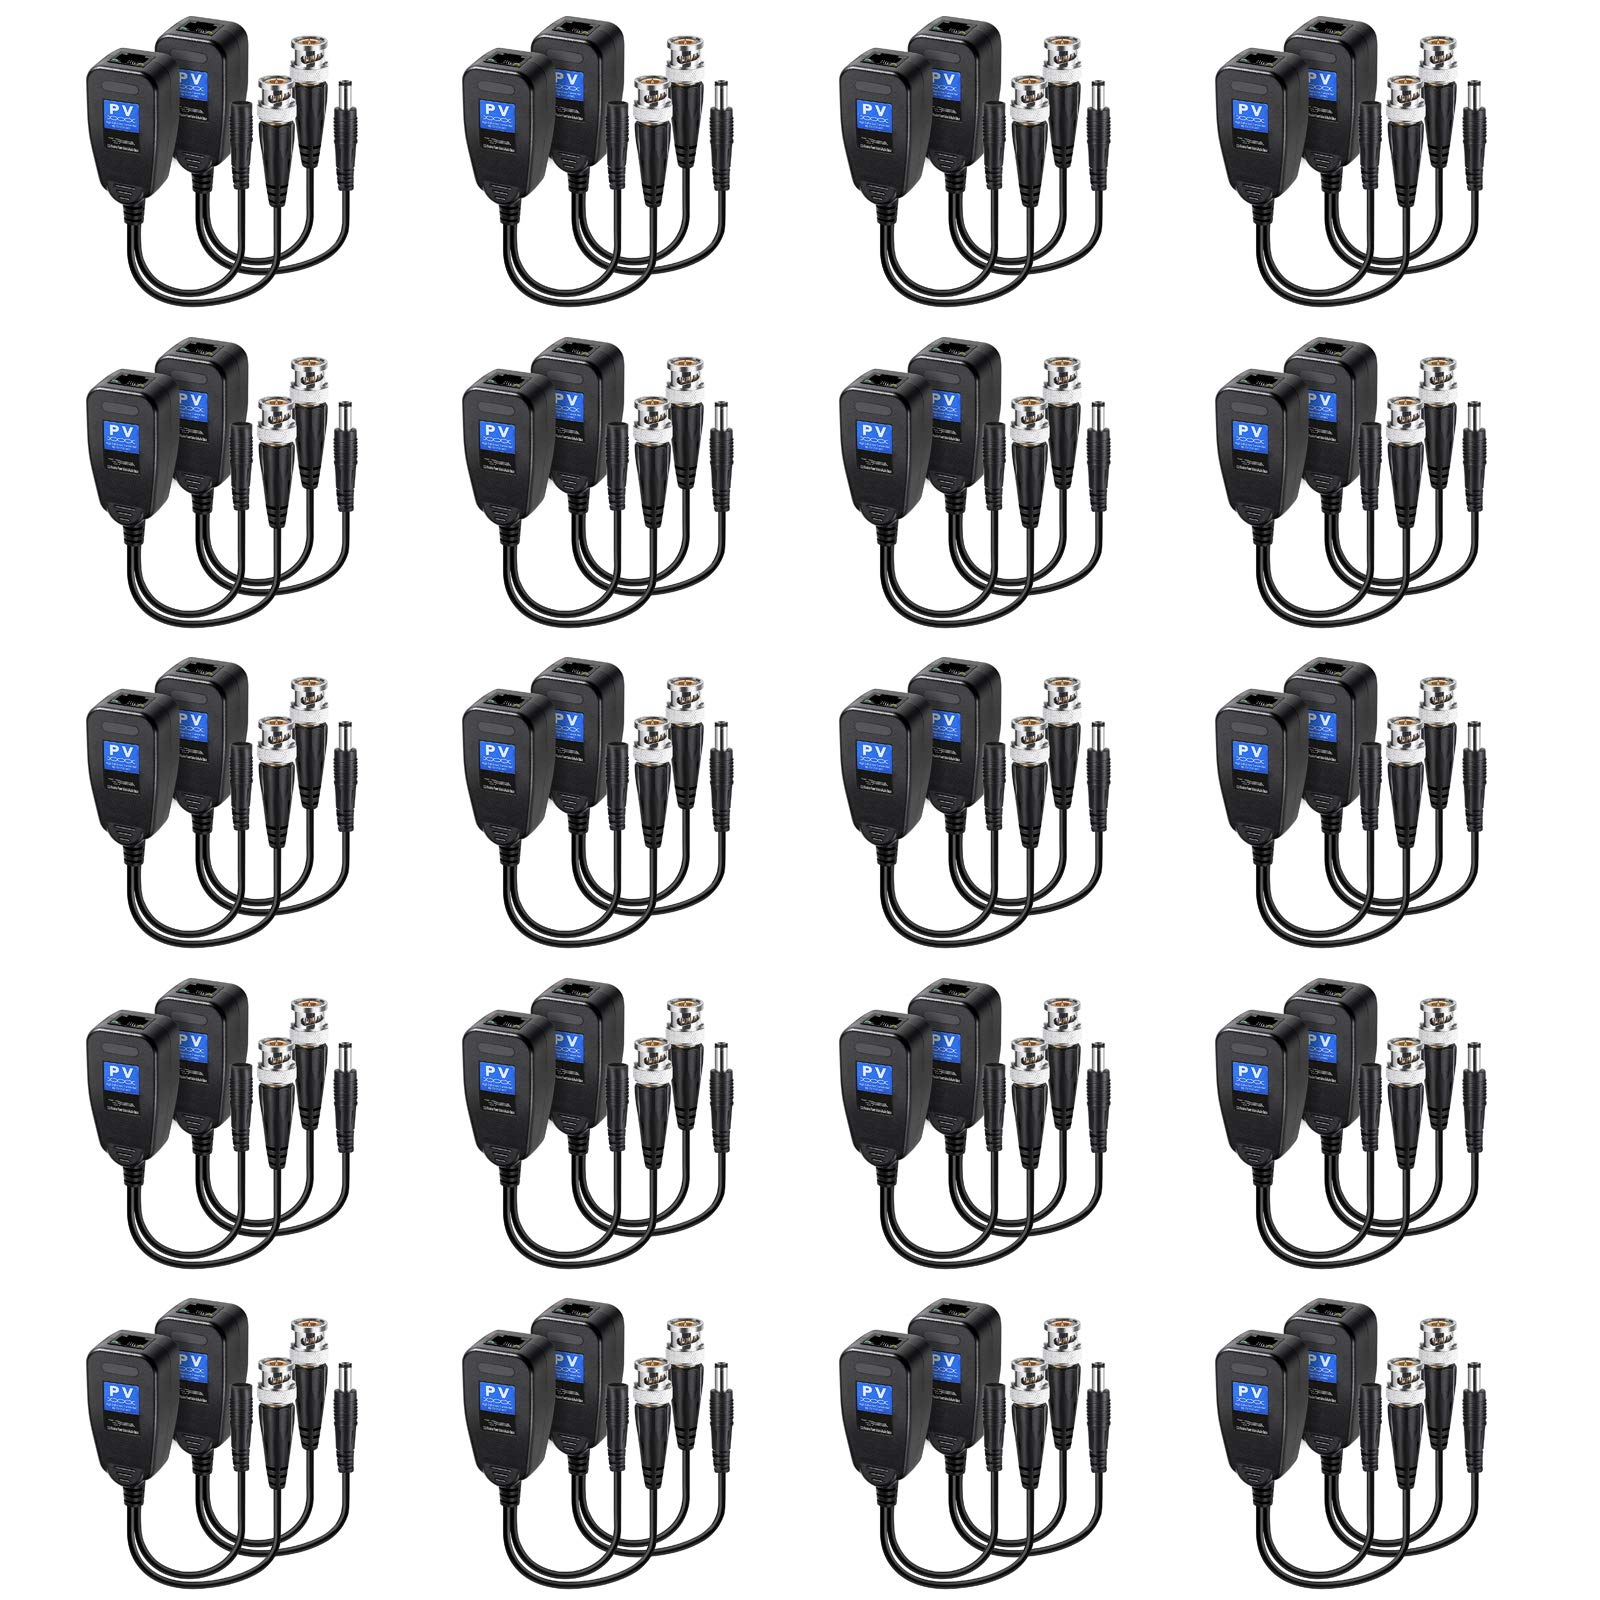 20 Pairs Passive Video Balun RJ45 Transceiver Transmitter HD-CVI/TVI/AHD/CVBS with DC Built-in Transient Suppression Protection for 1080P/2MP CCTV Security DVR Surveillance Camera System by eoere